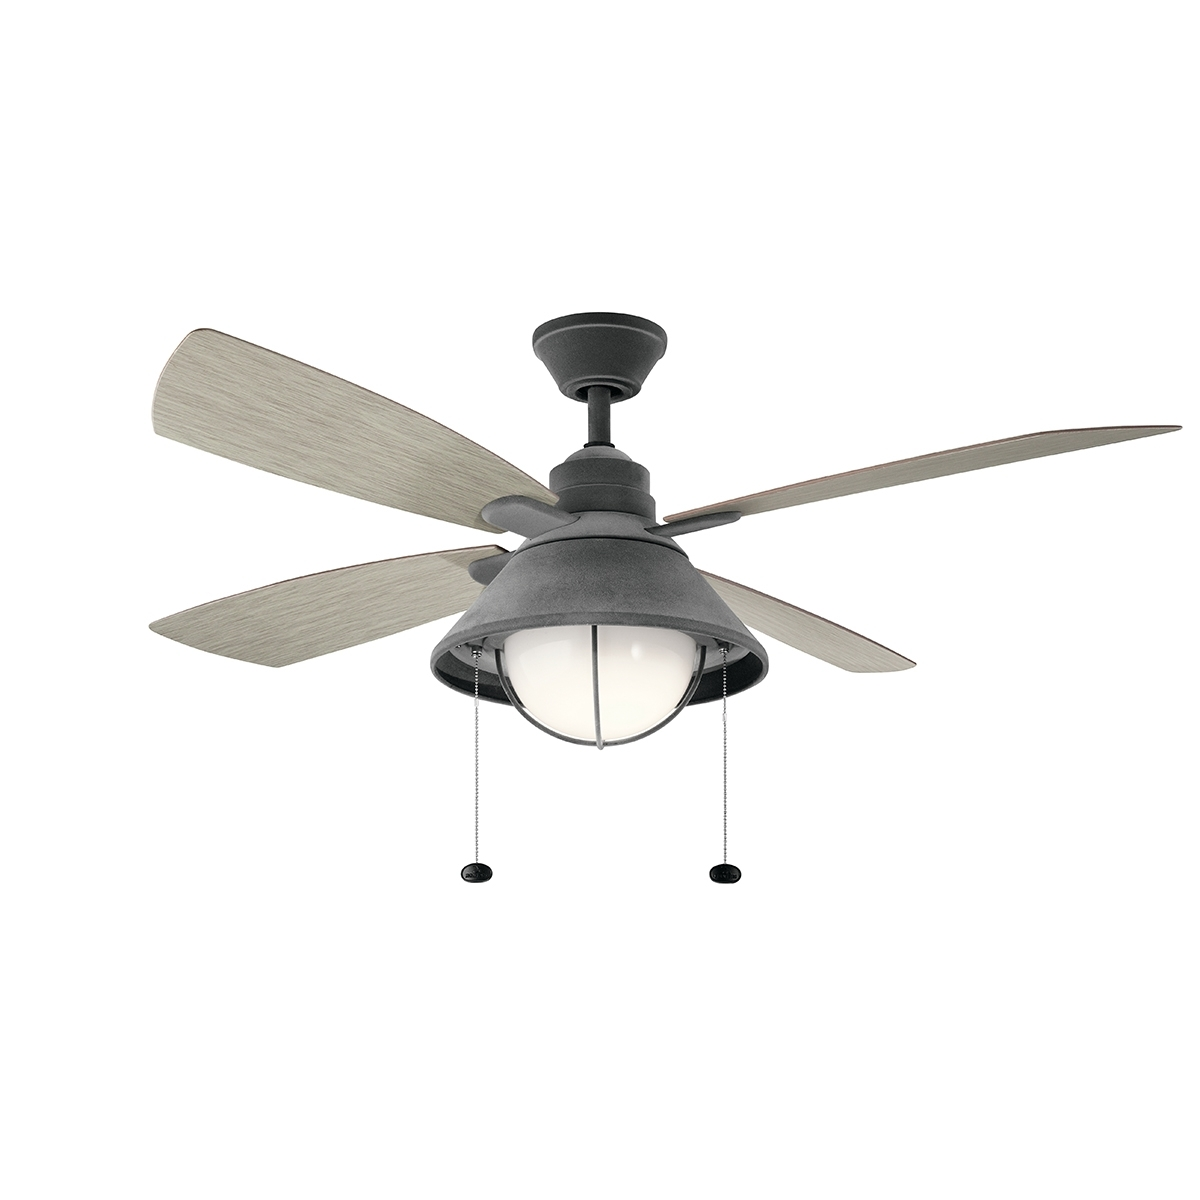 310181wzc With Regard To Kichler Outdoor Ceiling Fans With Lights (View 13 of 20)